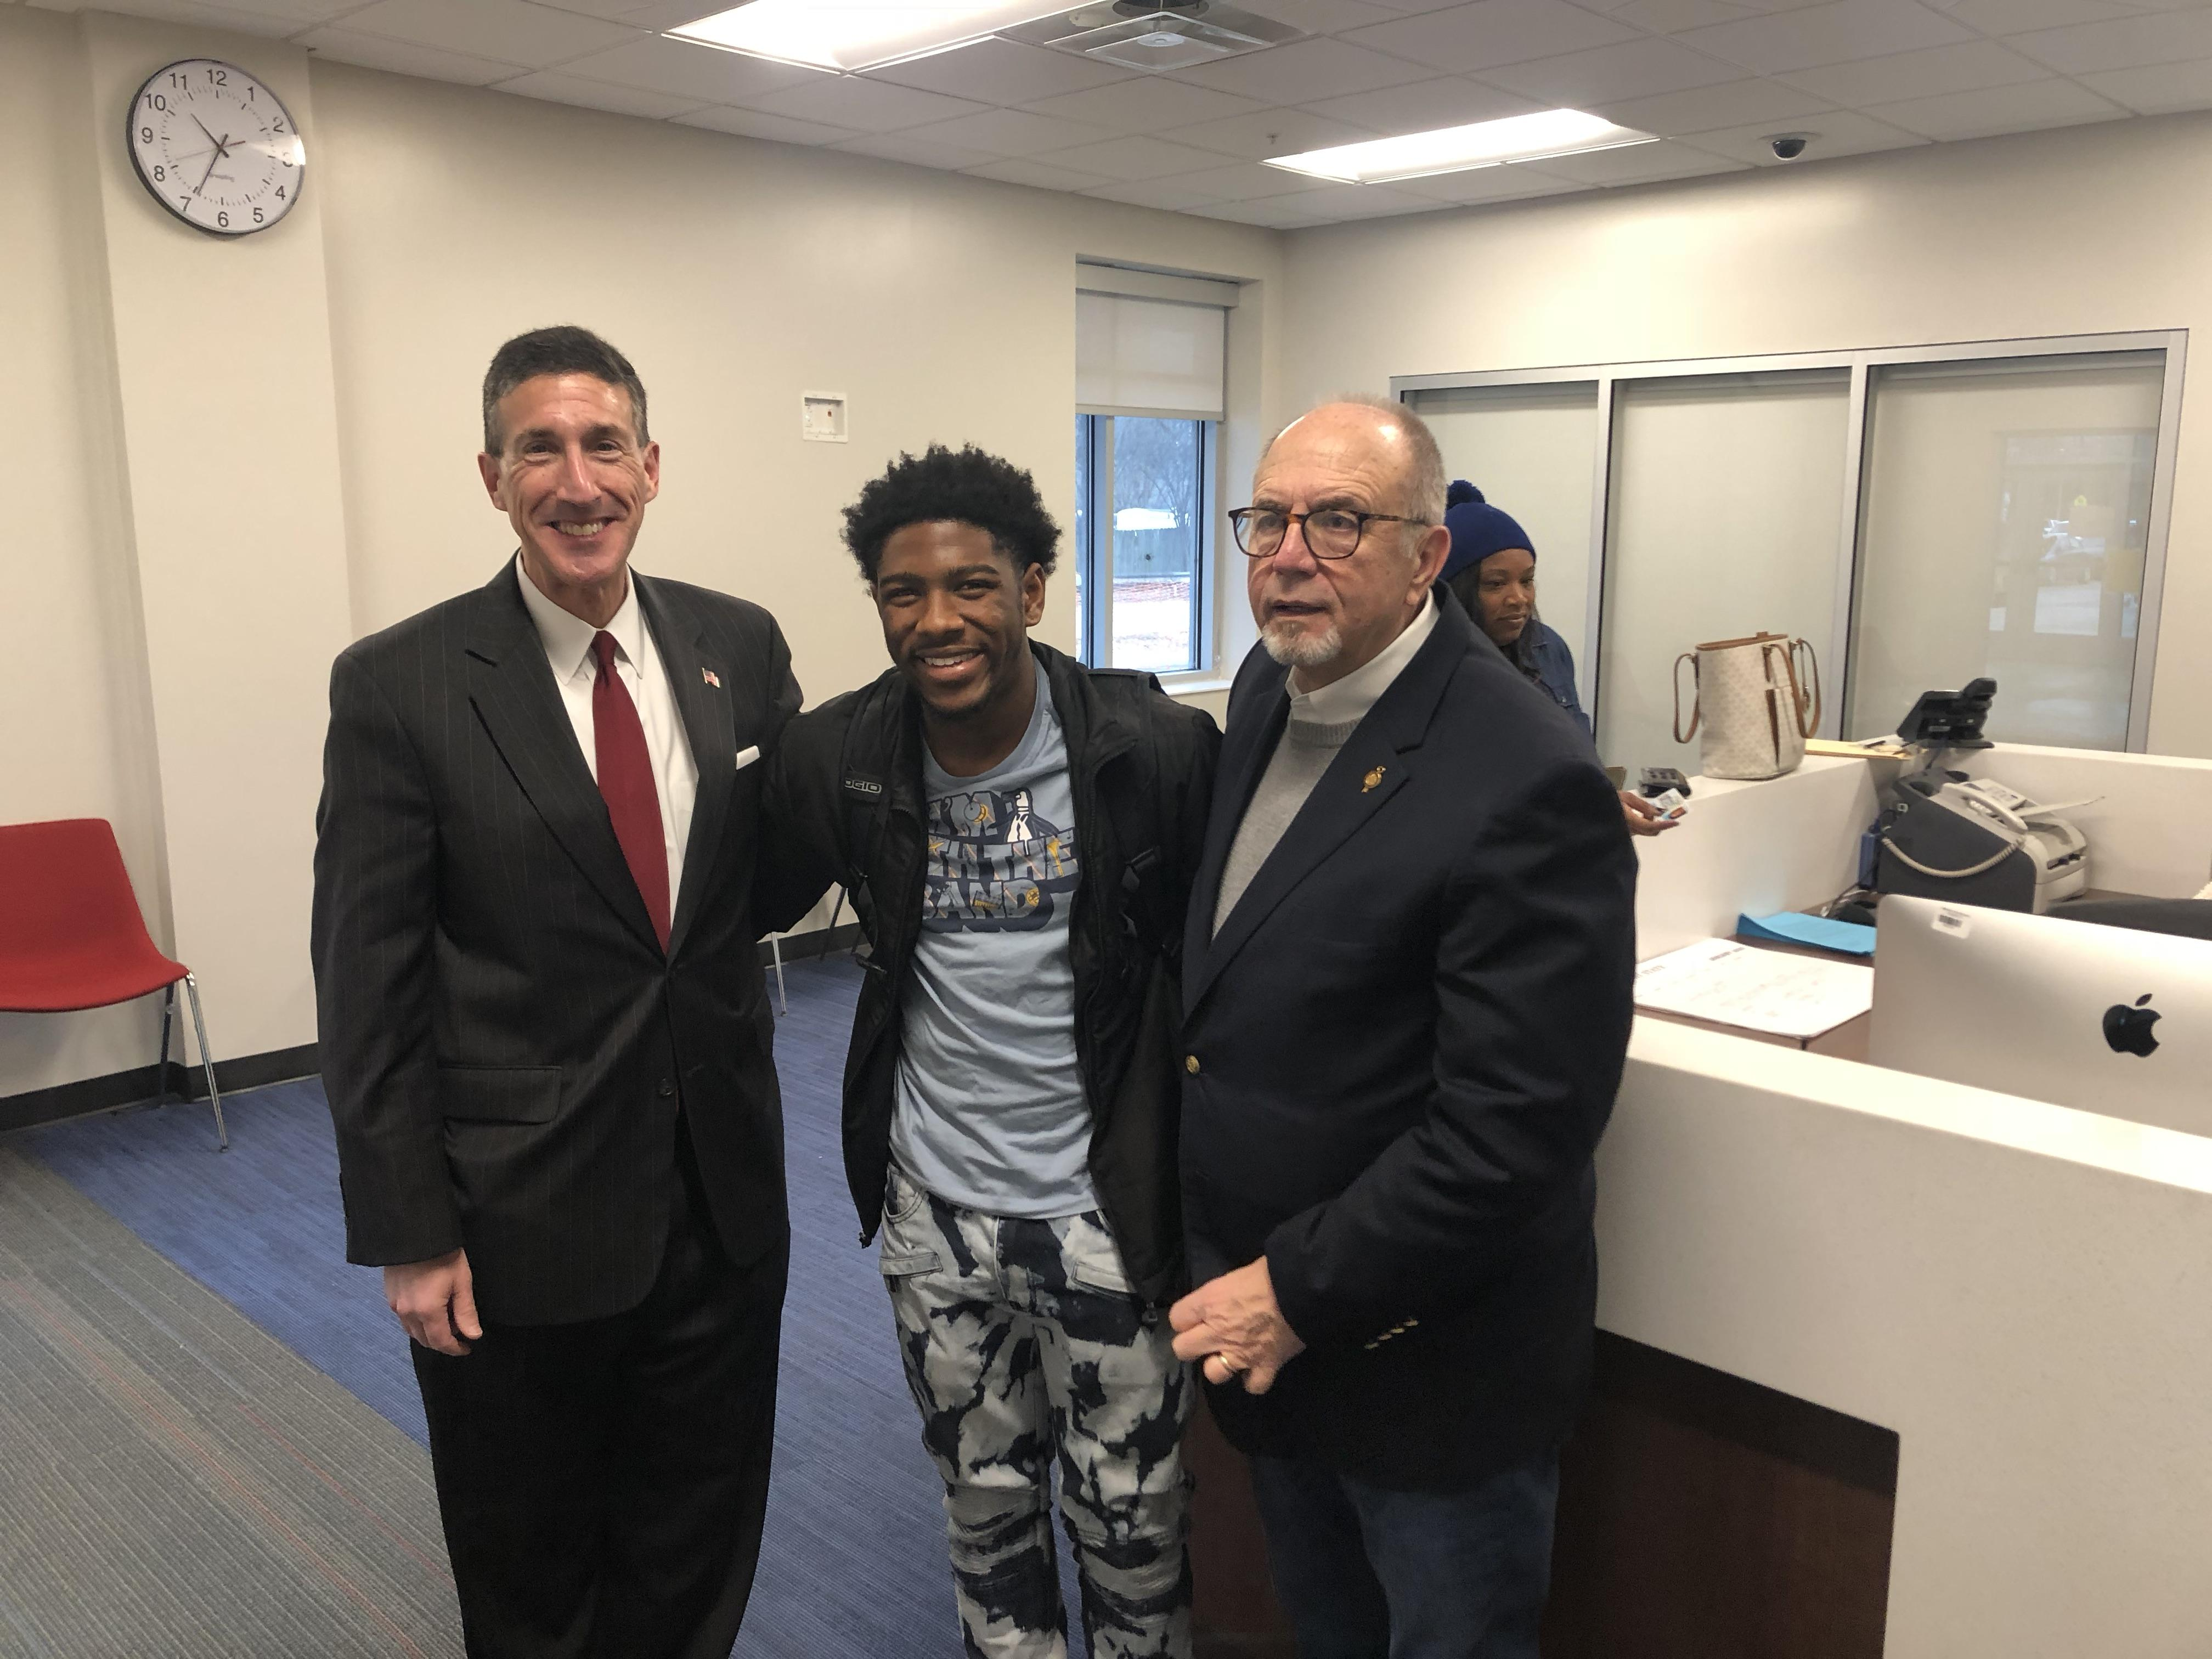 U.S. Congressman David Kustoff and Bartlett Mayor A. Keith McDonald with BHS Student